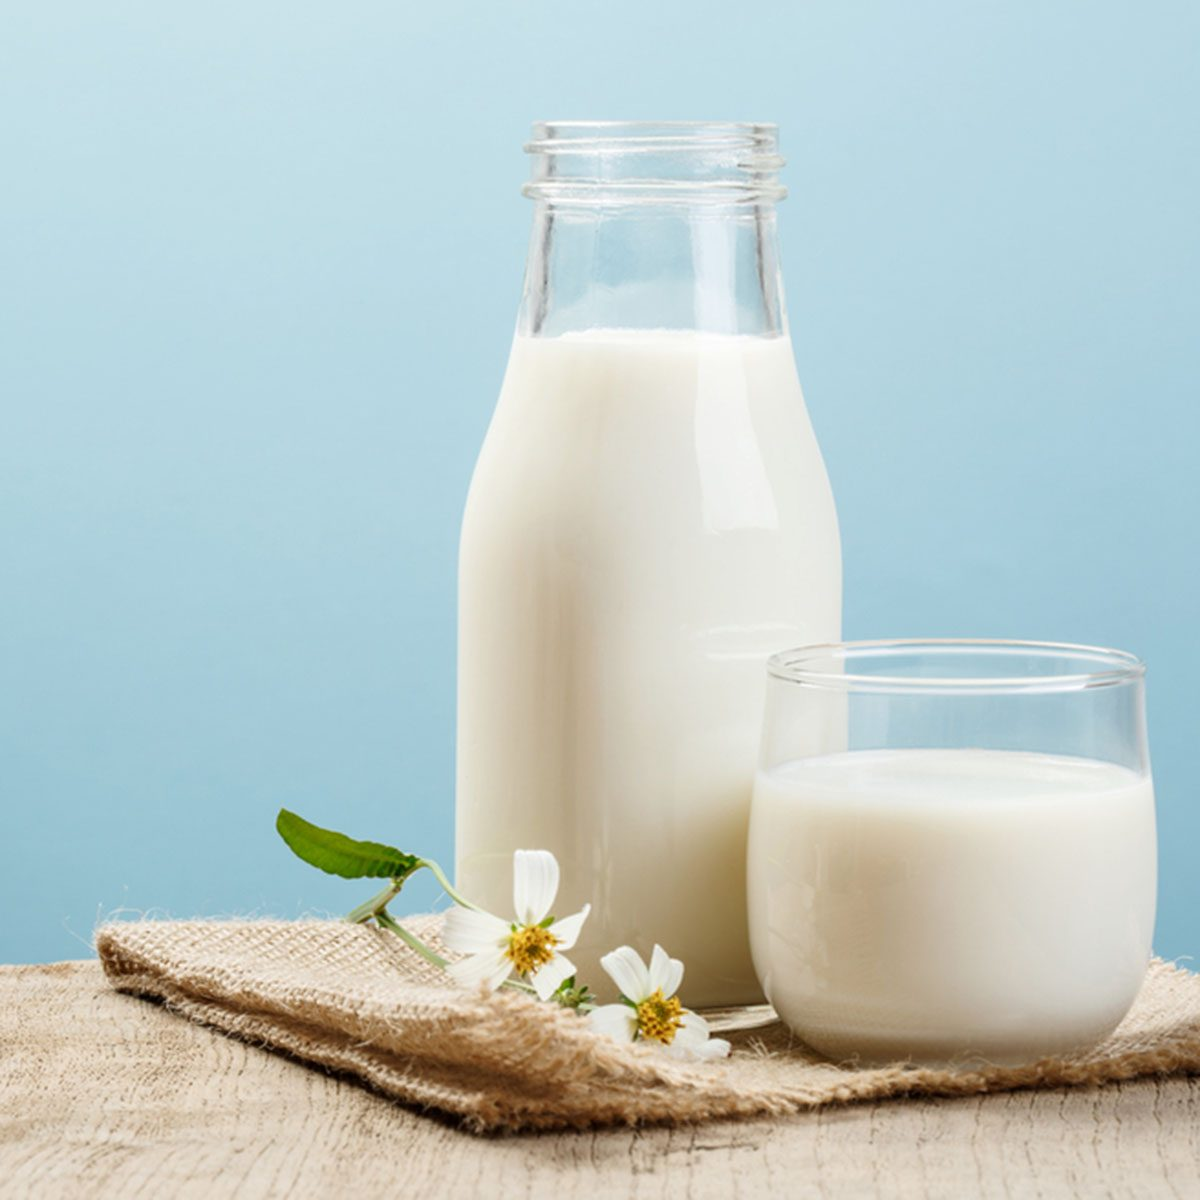 A bottle of milk and glass of milk on a wooden table on a blue background; Shutterstock ID 568076731